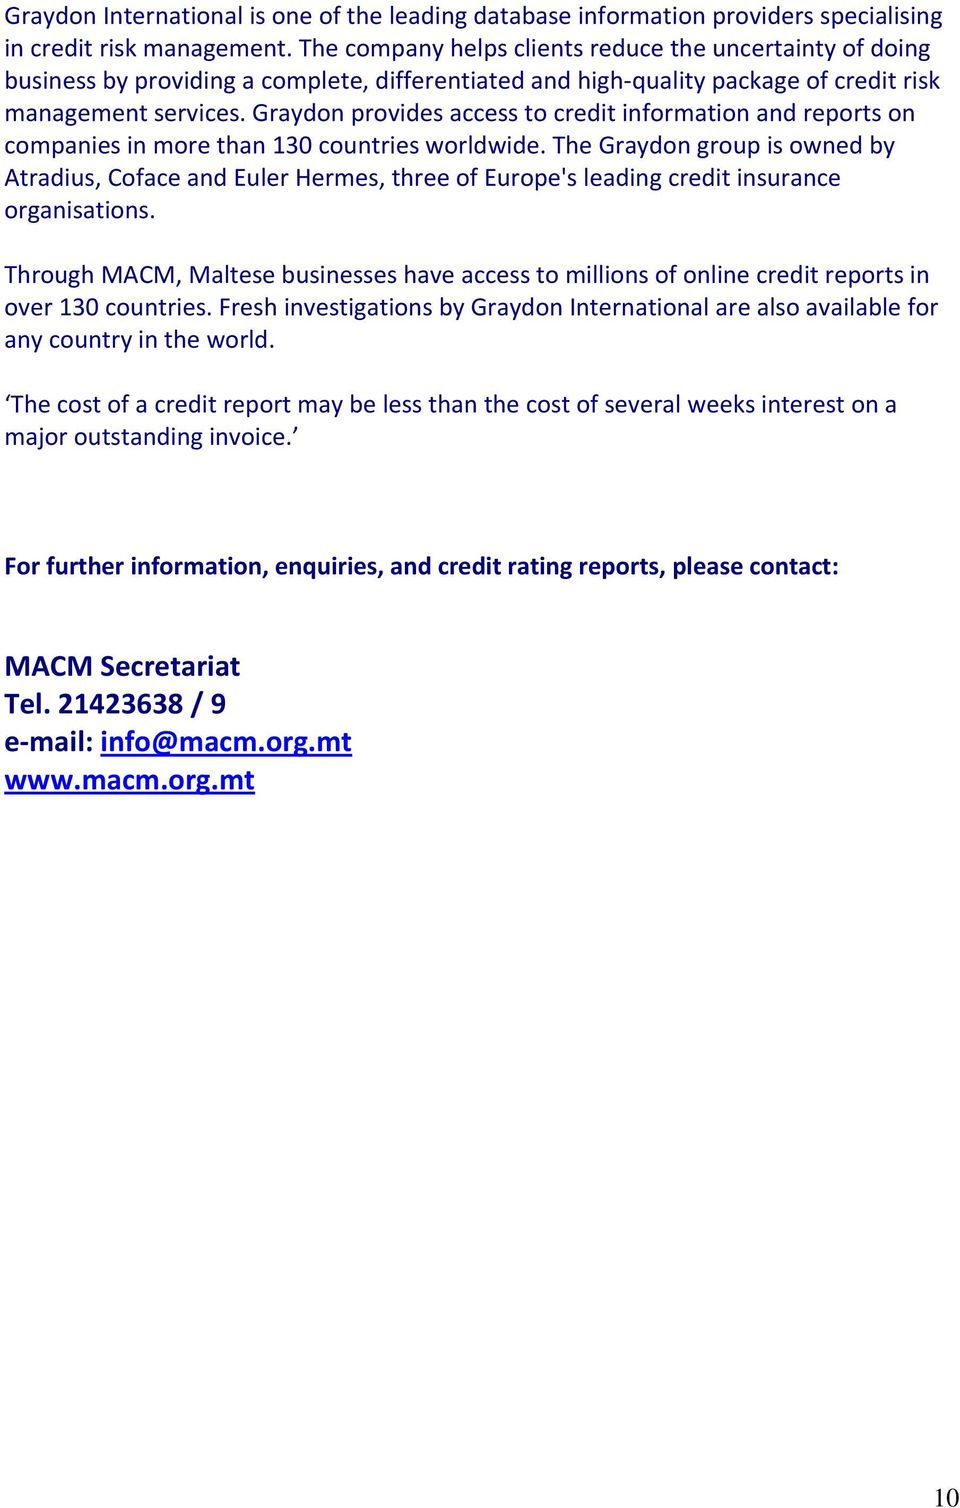 Graydon provides access to credit information and reports on companies in more than 130 countries worldwide.